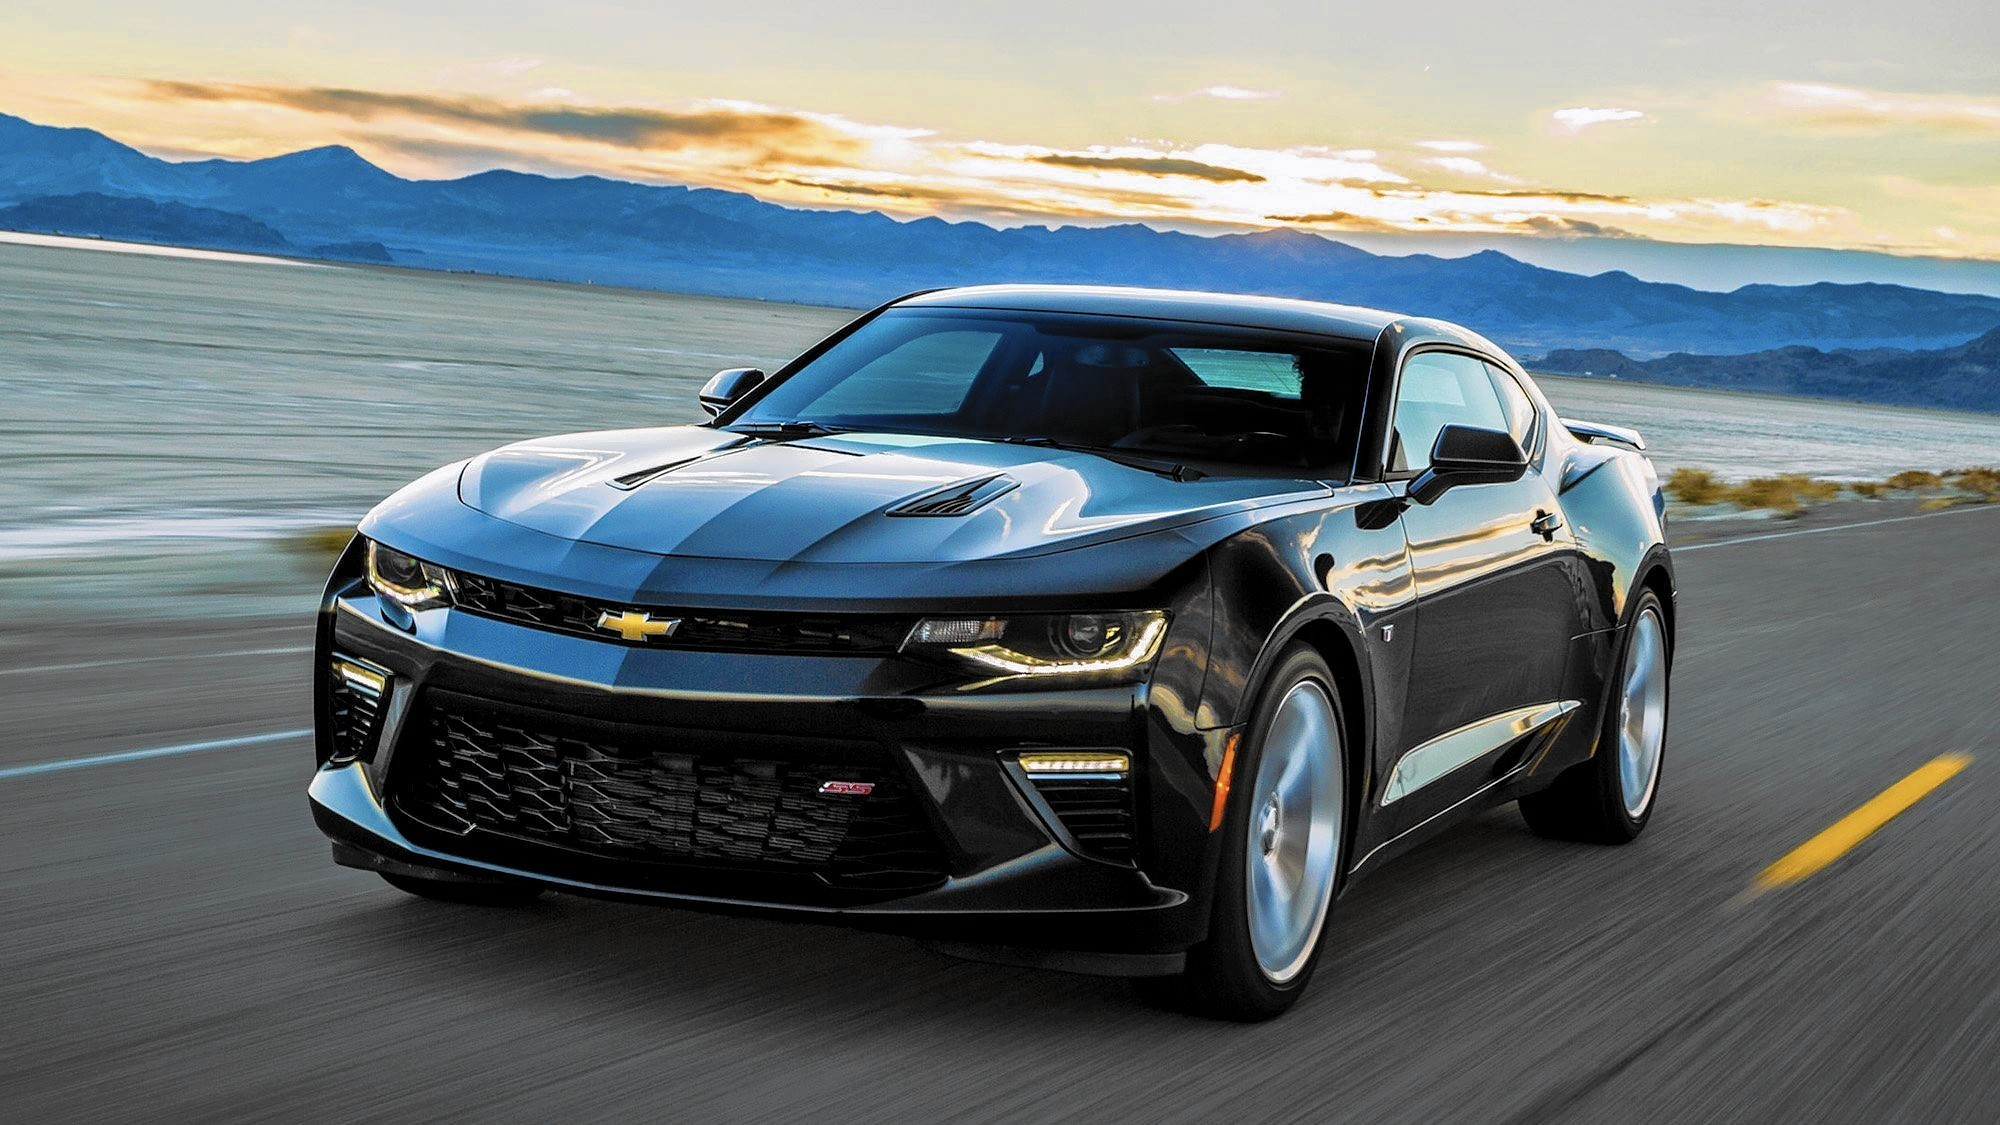 2016 Chevrolet Camaro turns up the heat during a drive to Death Valley - LA Times